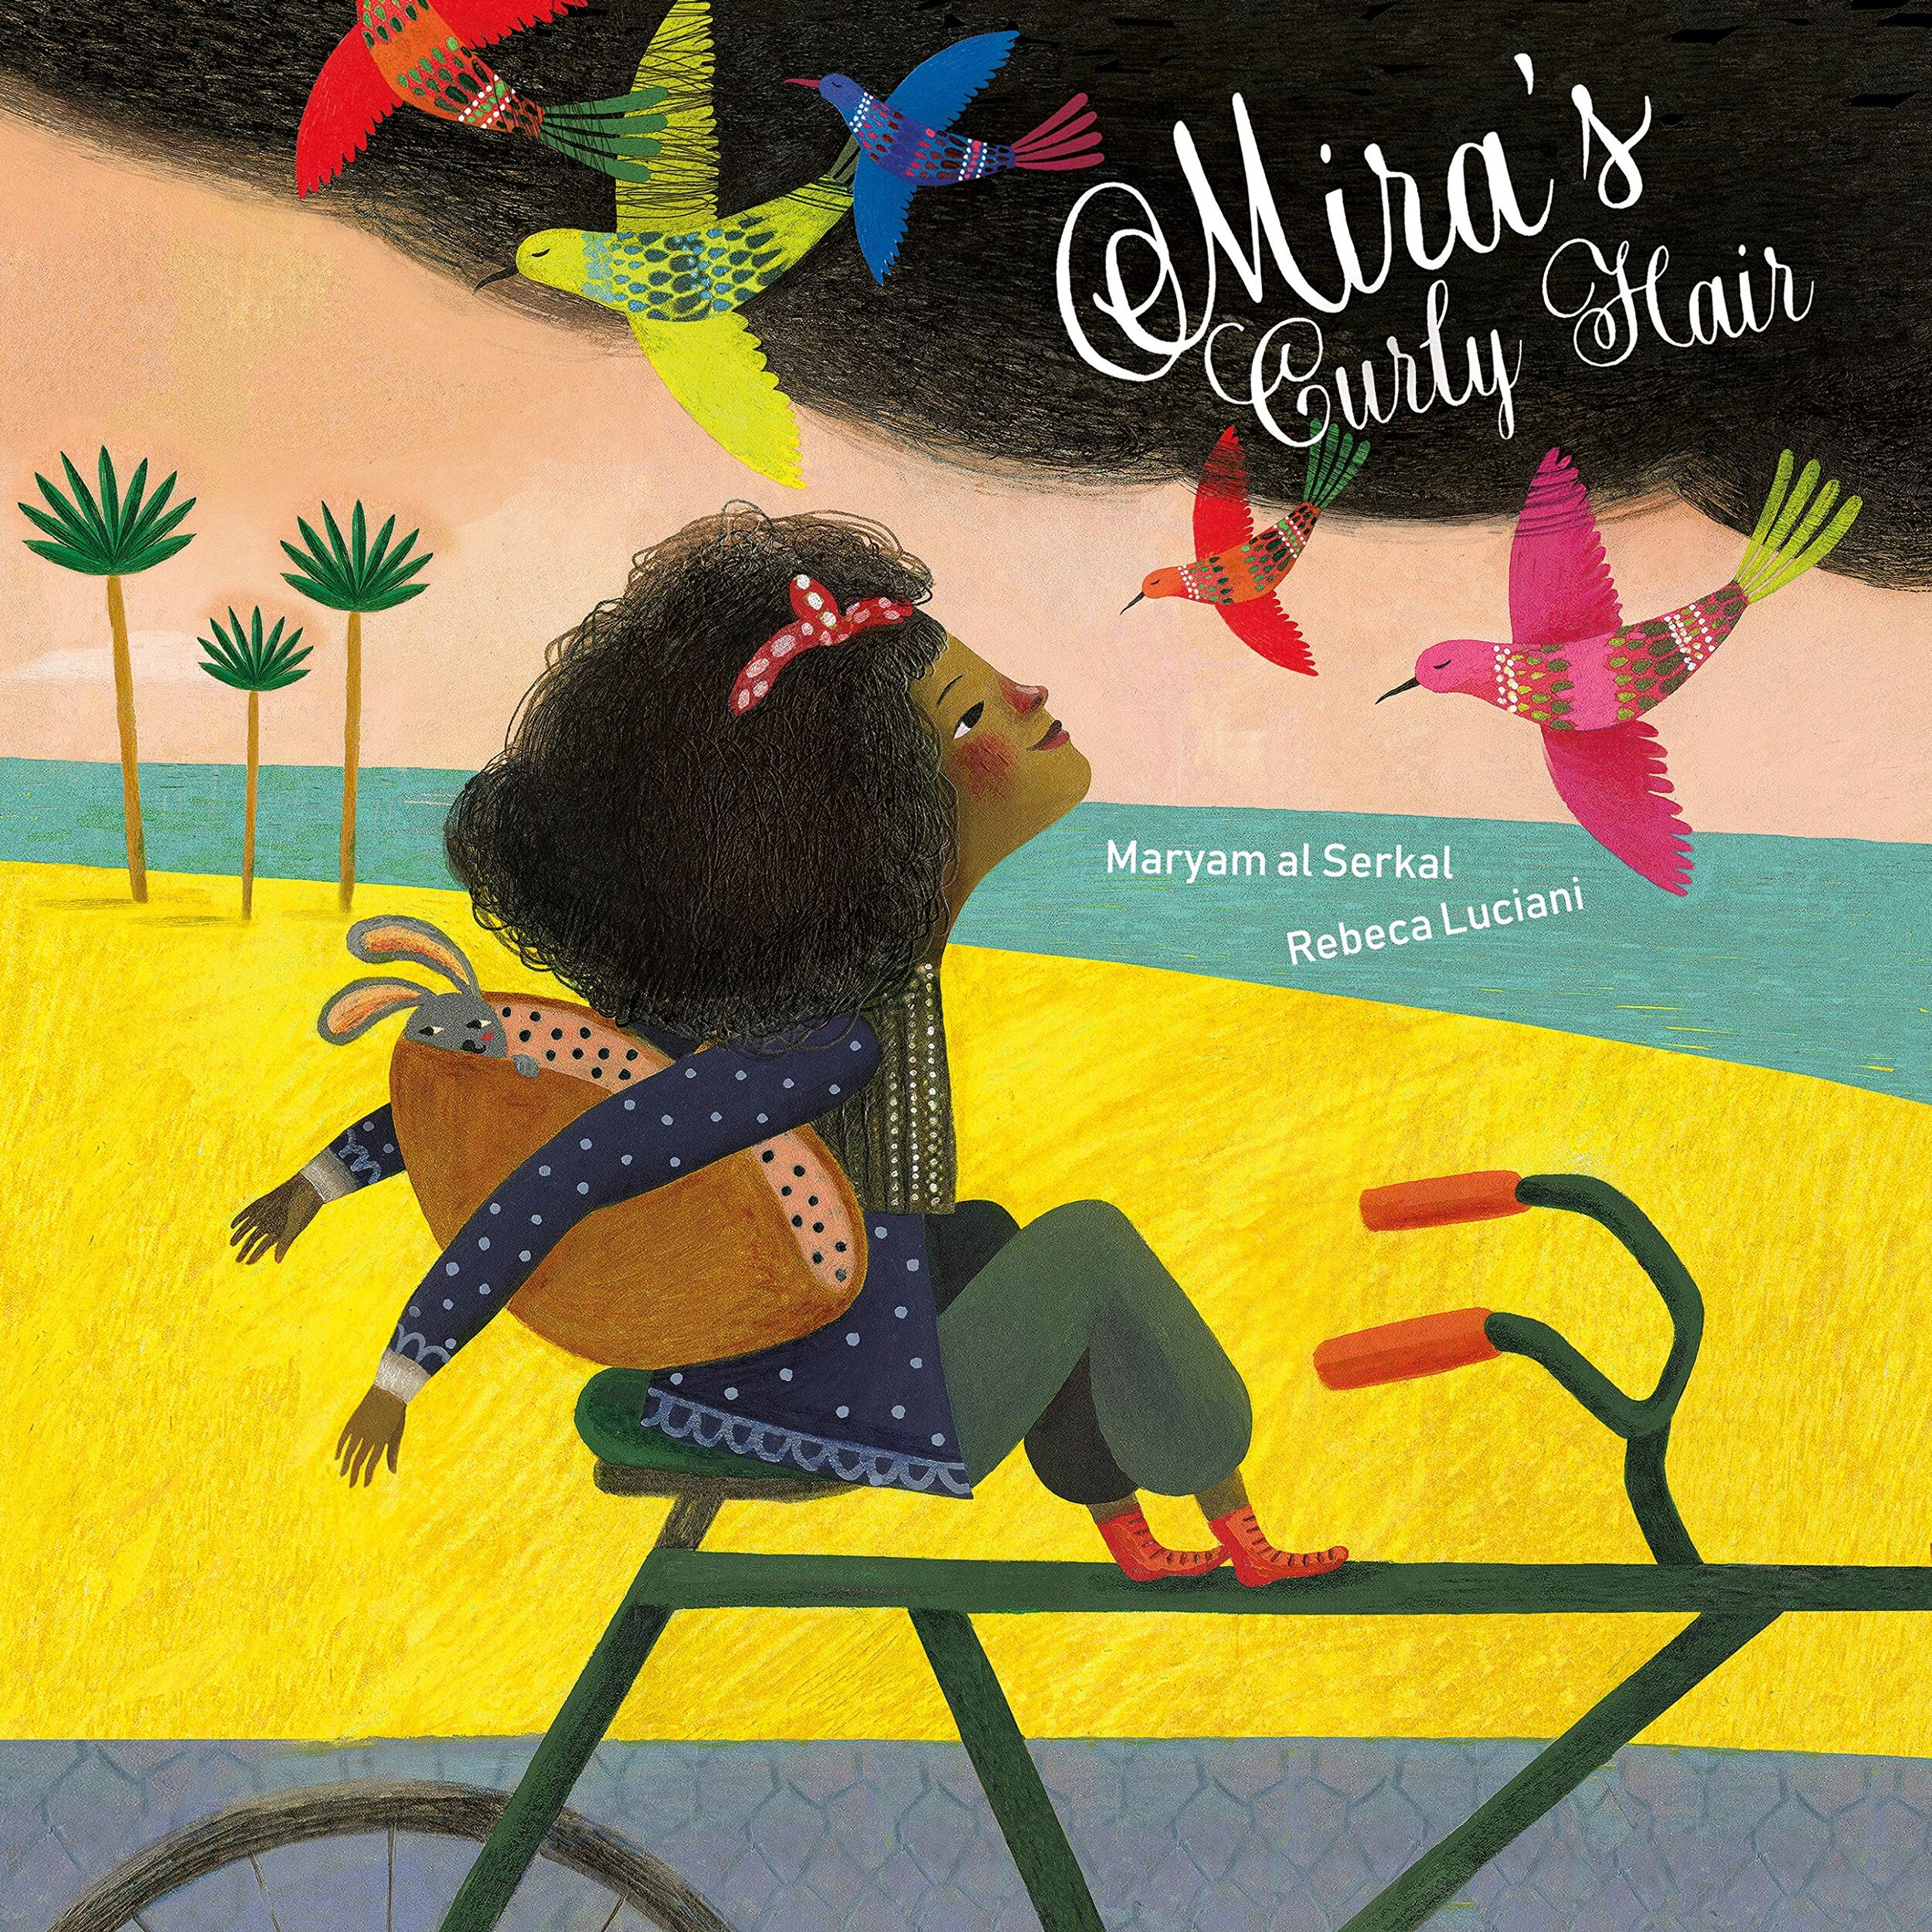 Mira's Curly Hair , by Maryam al Serkal, illustrated by Rebeca Luciani